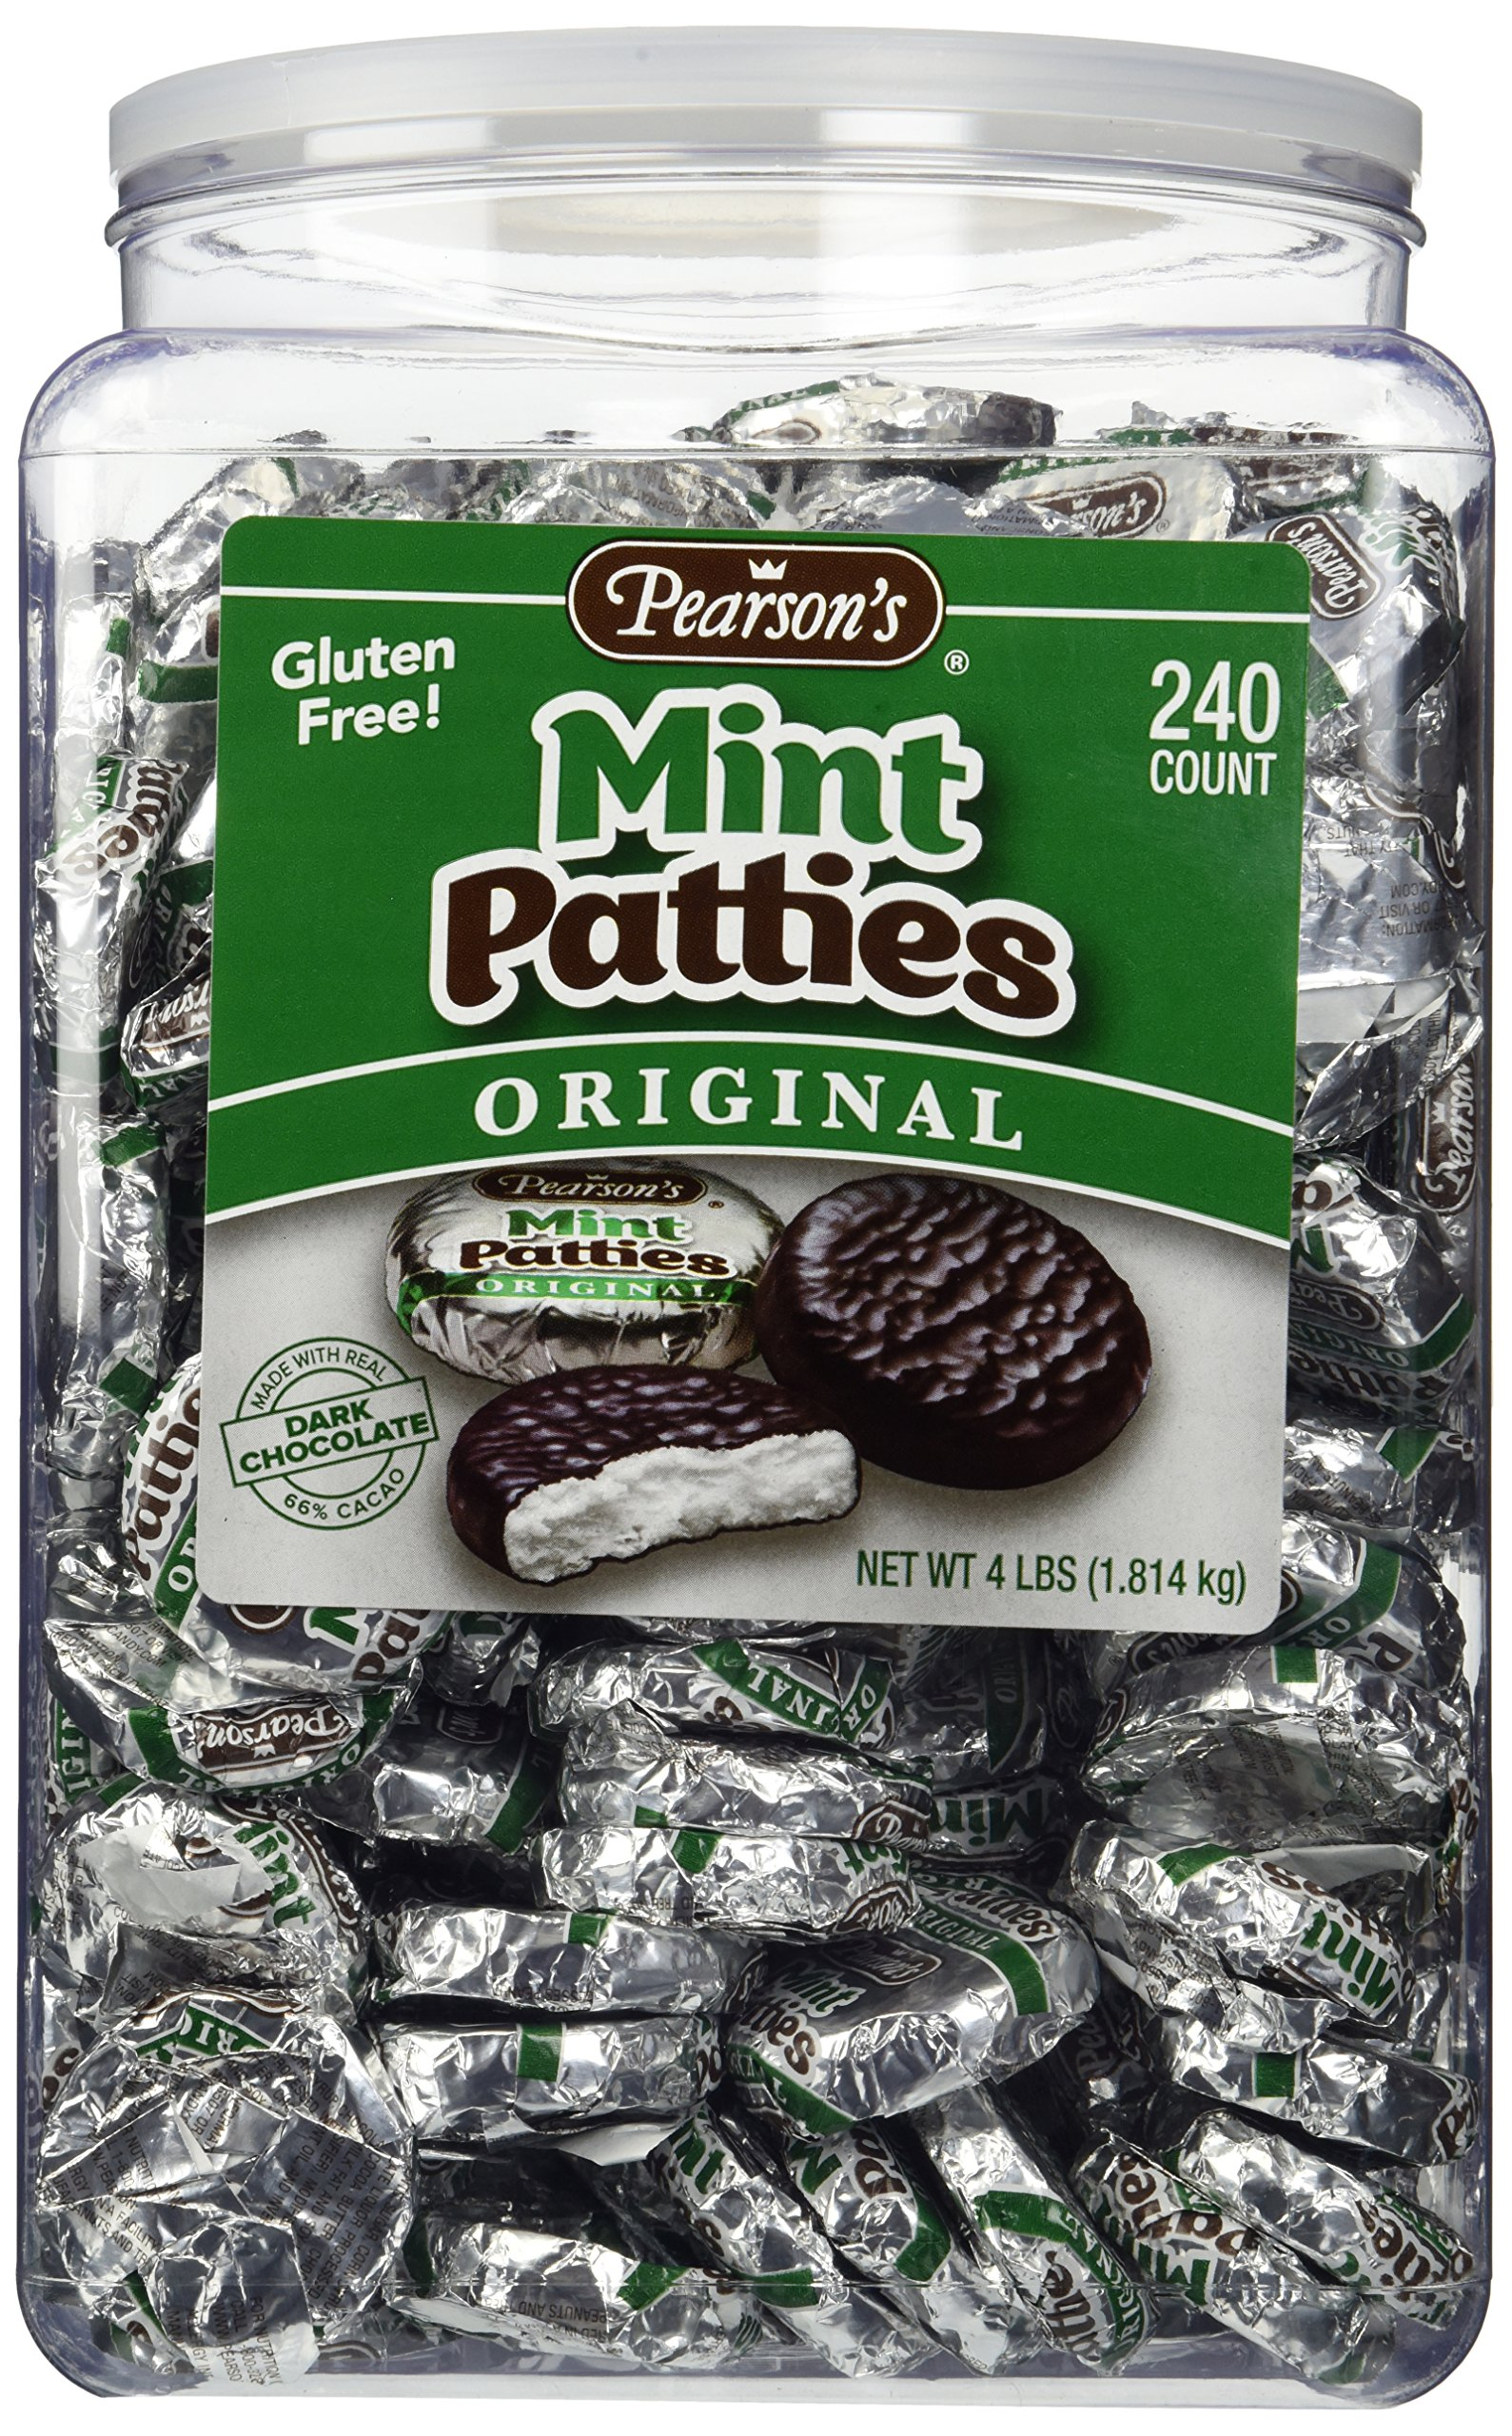 Pearson's-Mint Patties, 240 Mint Patties